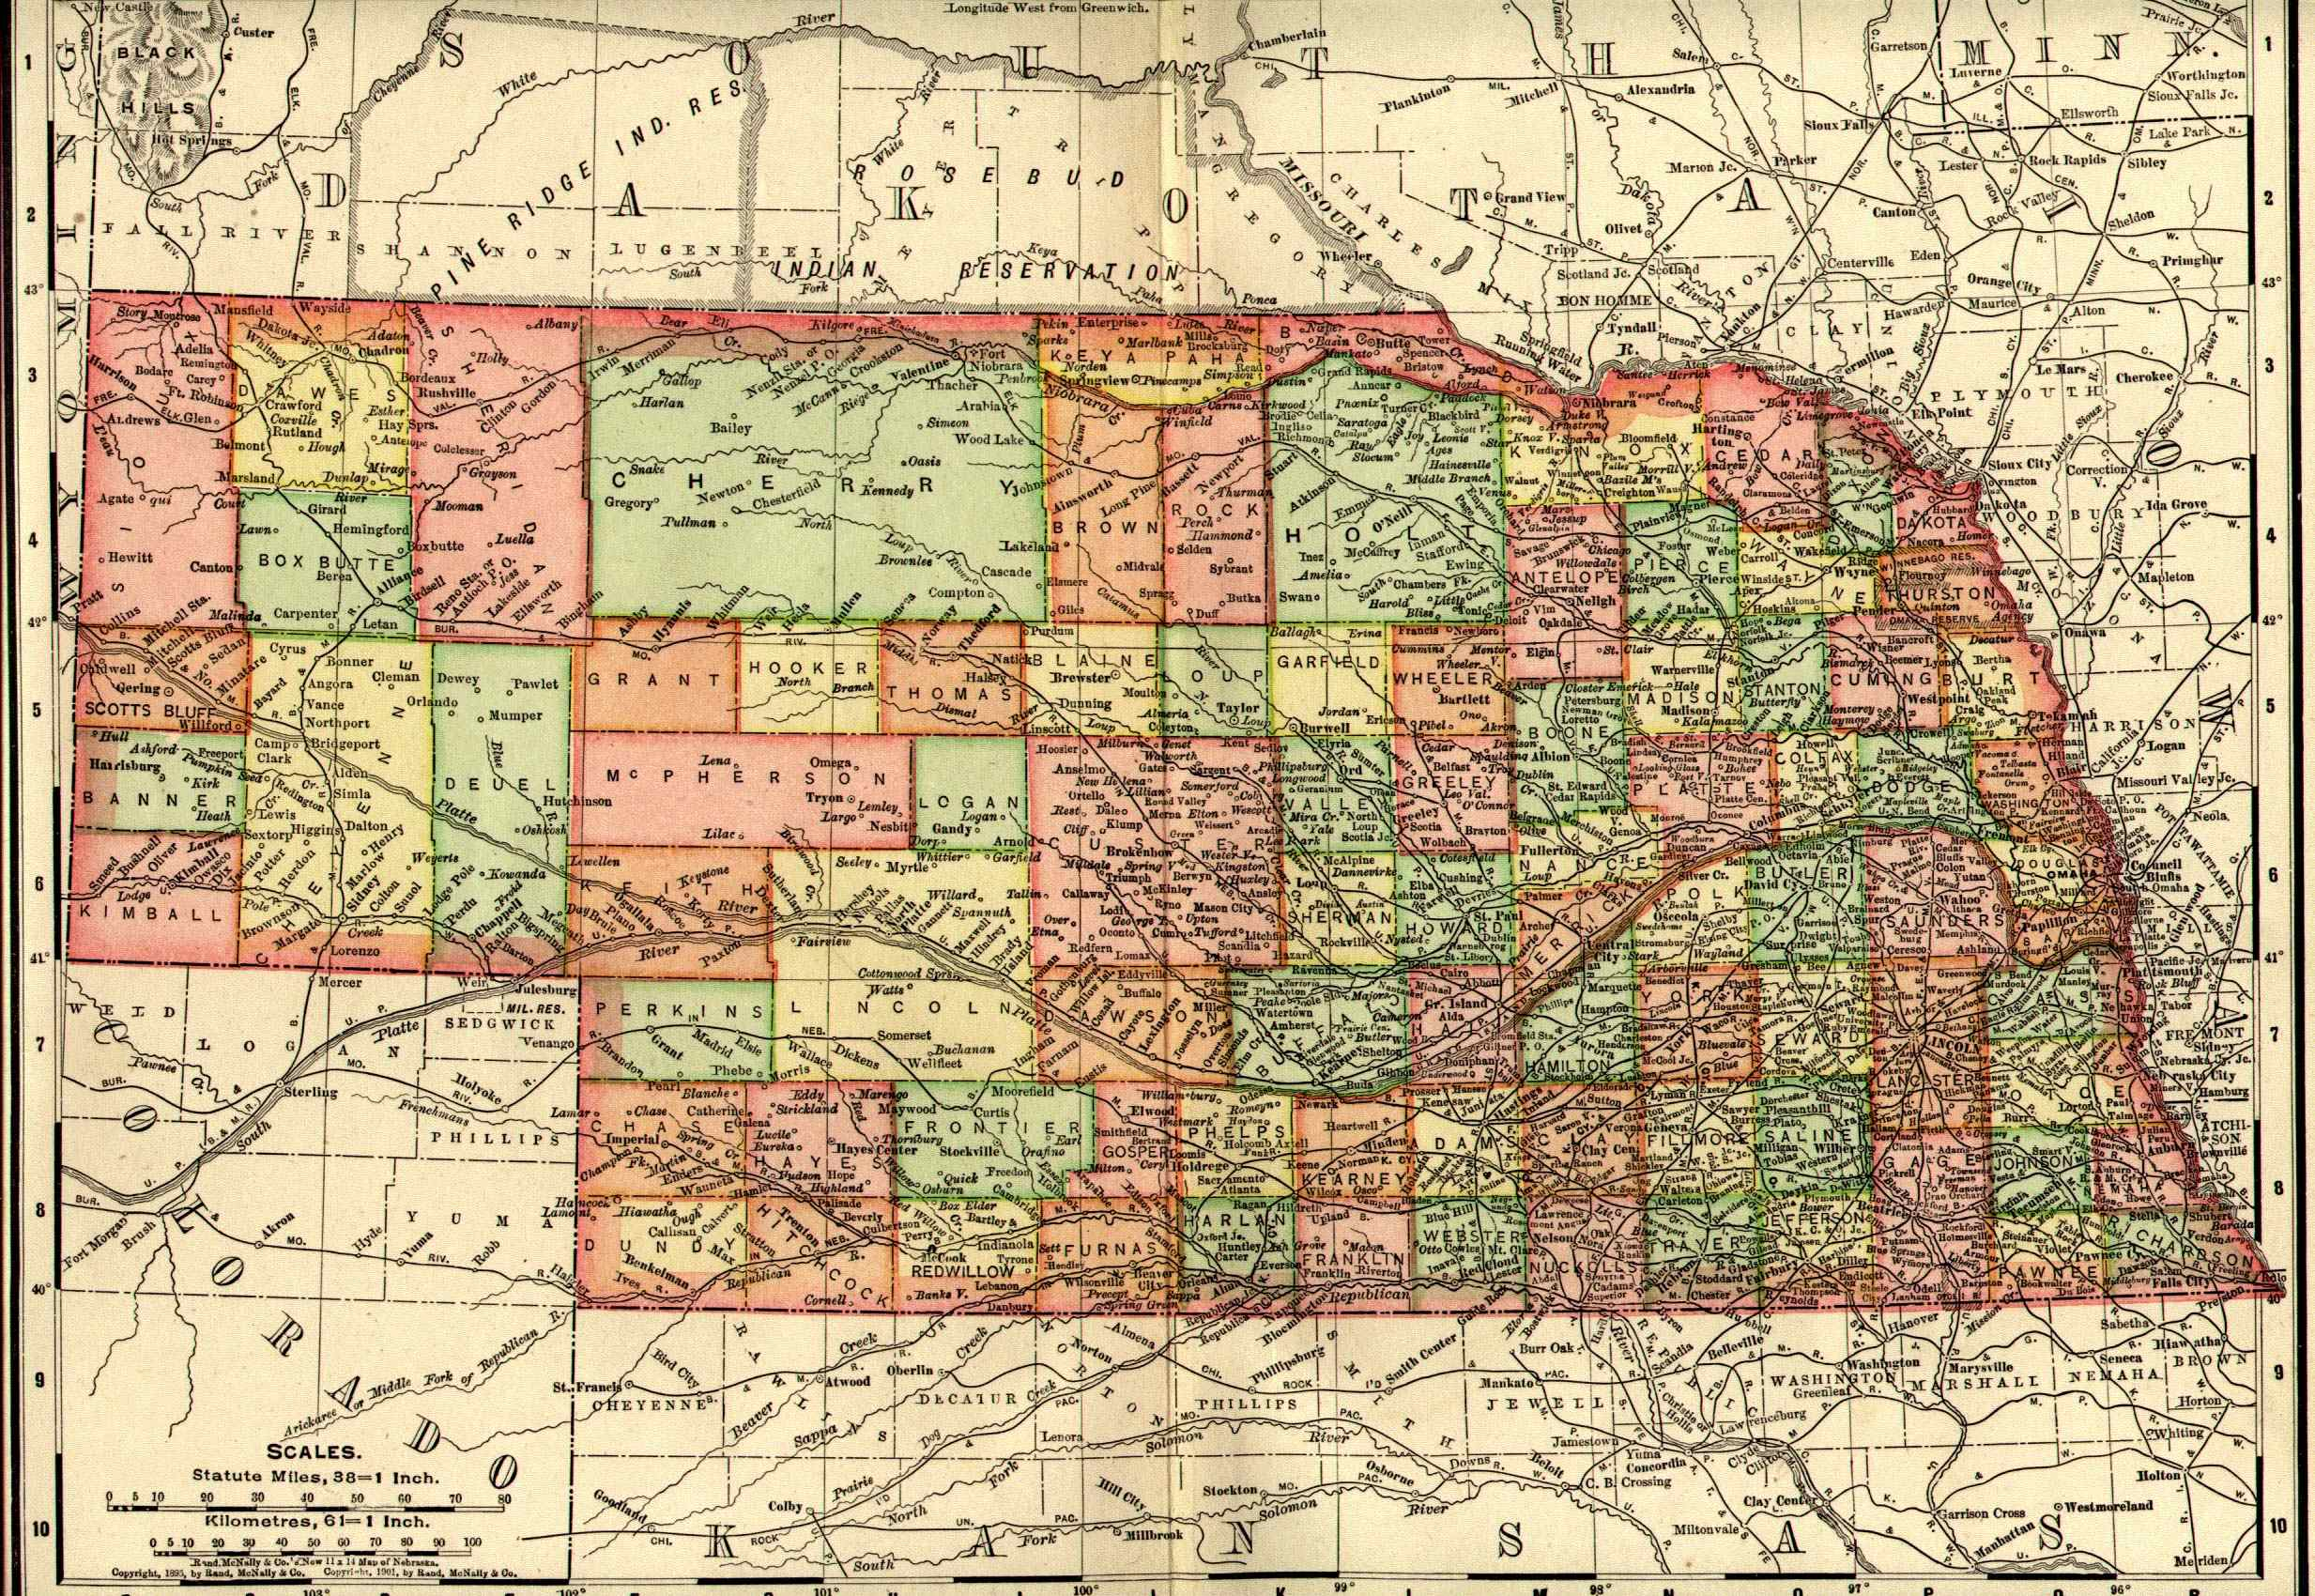 Nebraska Maps Nebraska Digital Map Library Table Of Contents - Map of nebraska towns